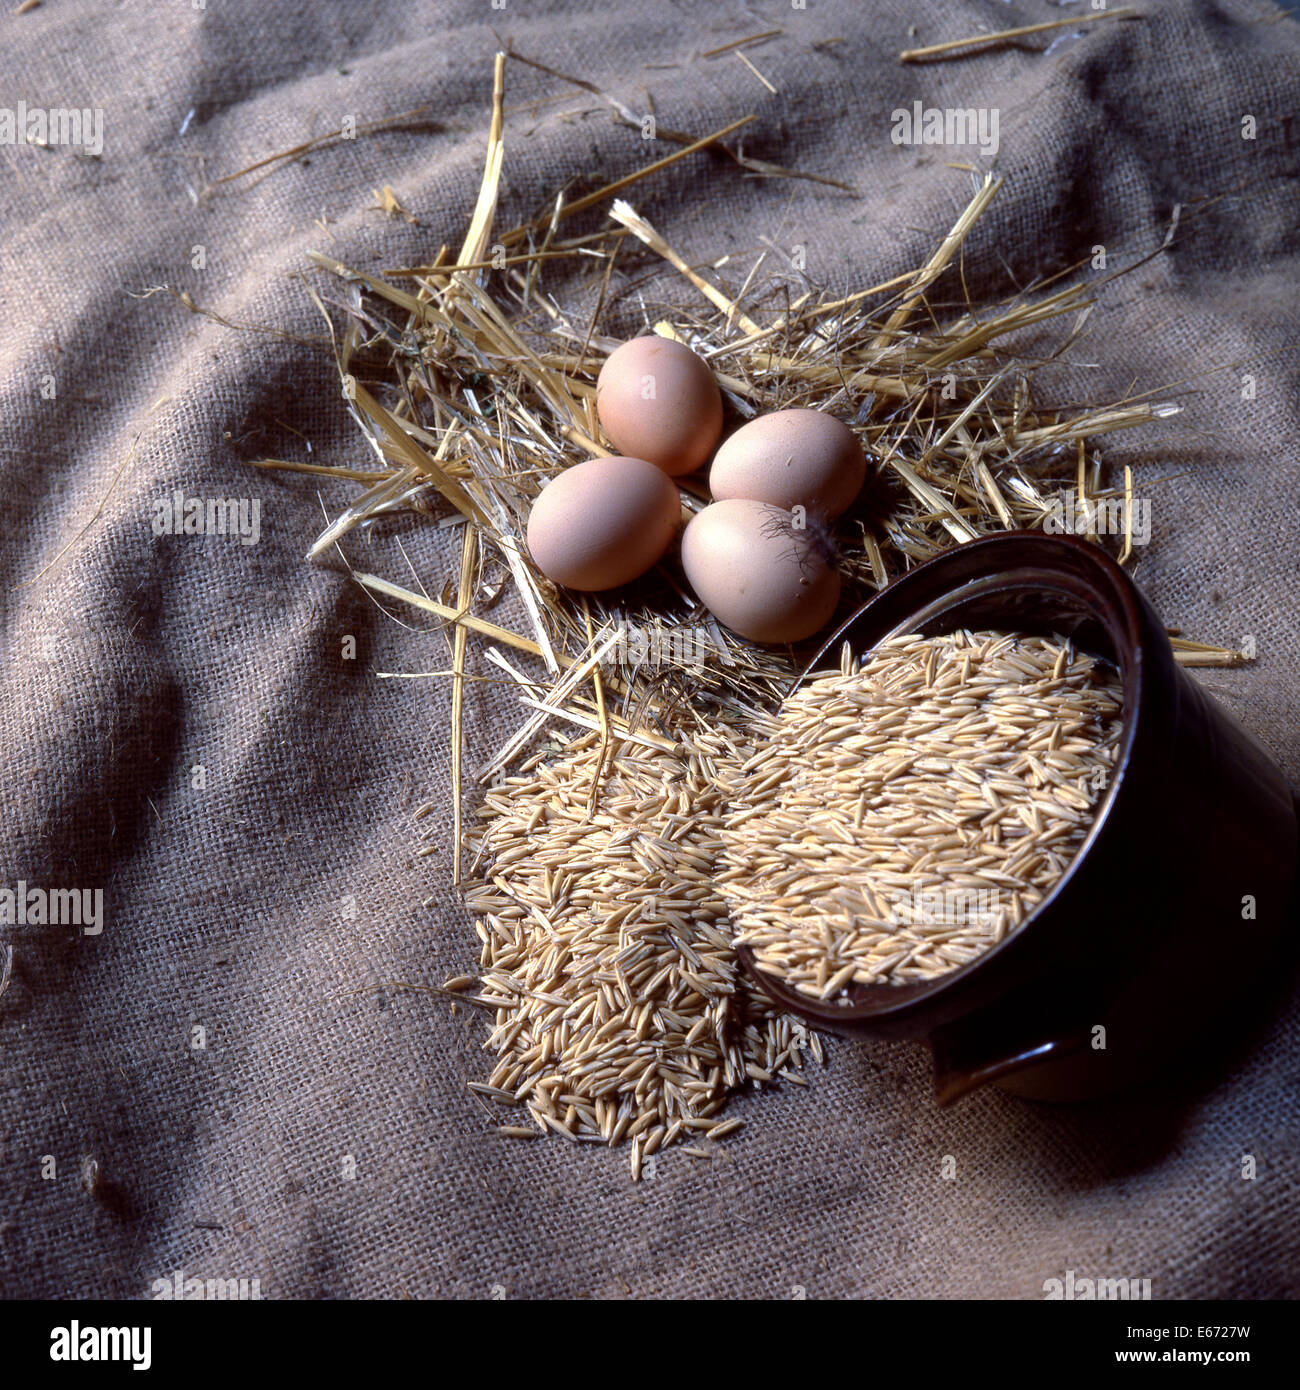 New laid eggs, straw and oats on hessian sacking - Stock Image